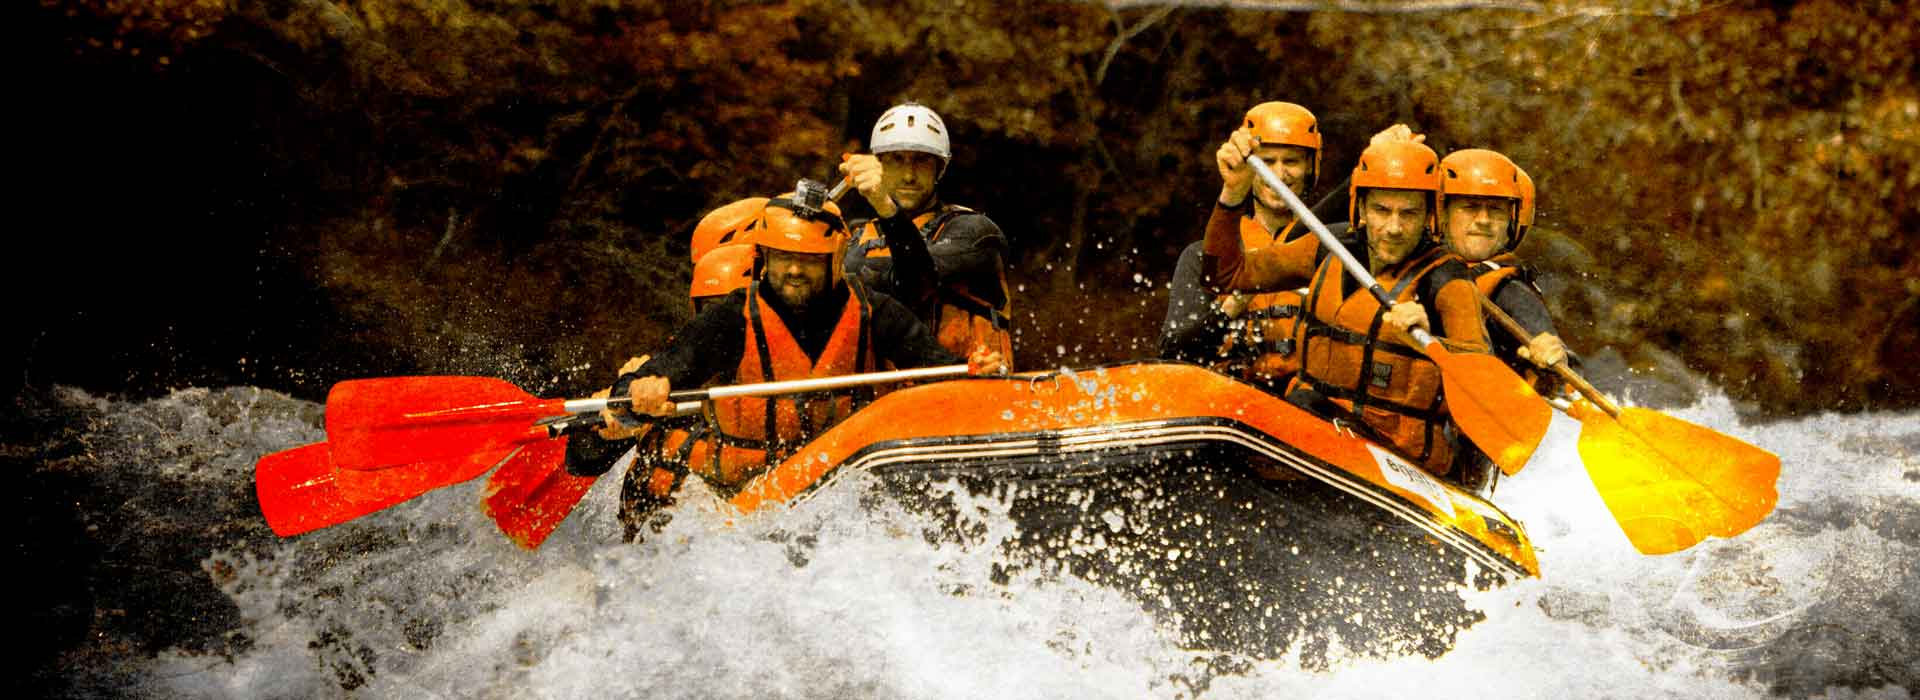 Half day rafting in Savoie, white water base Bourg-Saint-Maurice